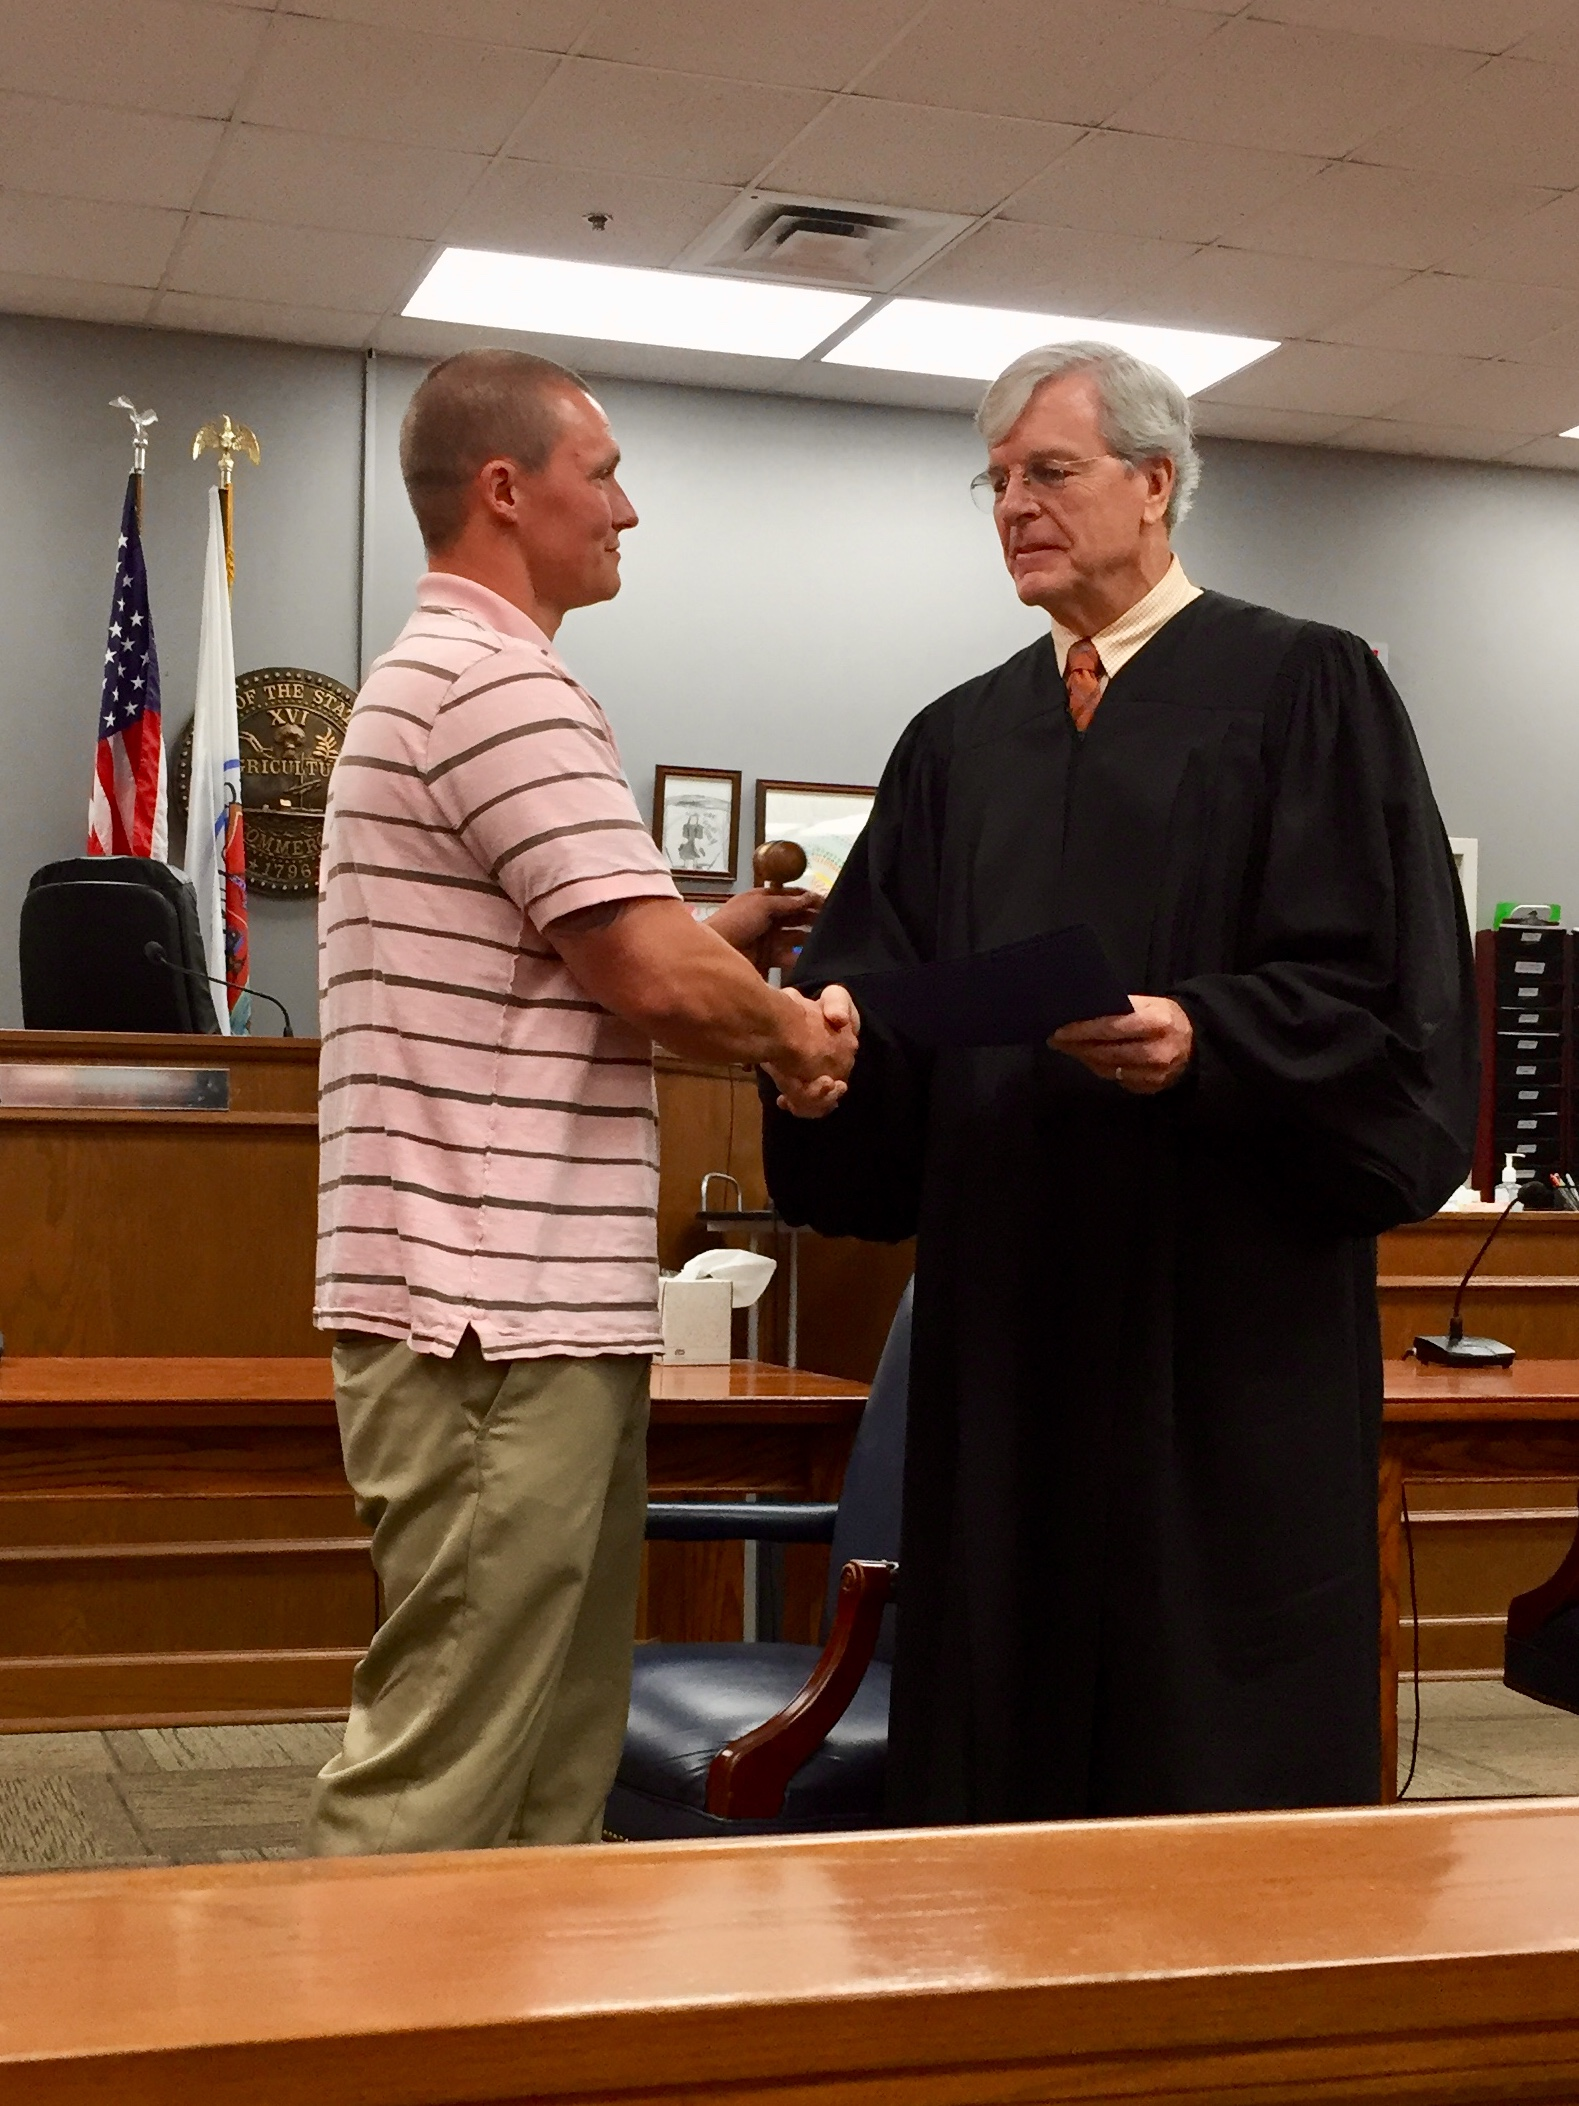 Graduate Brian being recognized by Judge James Martin